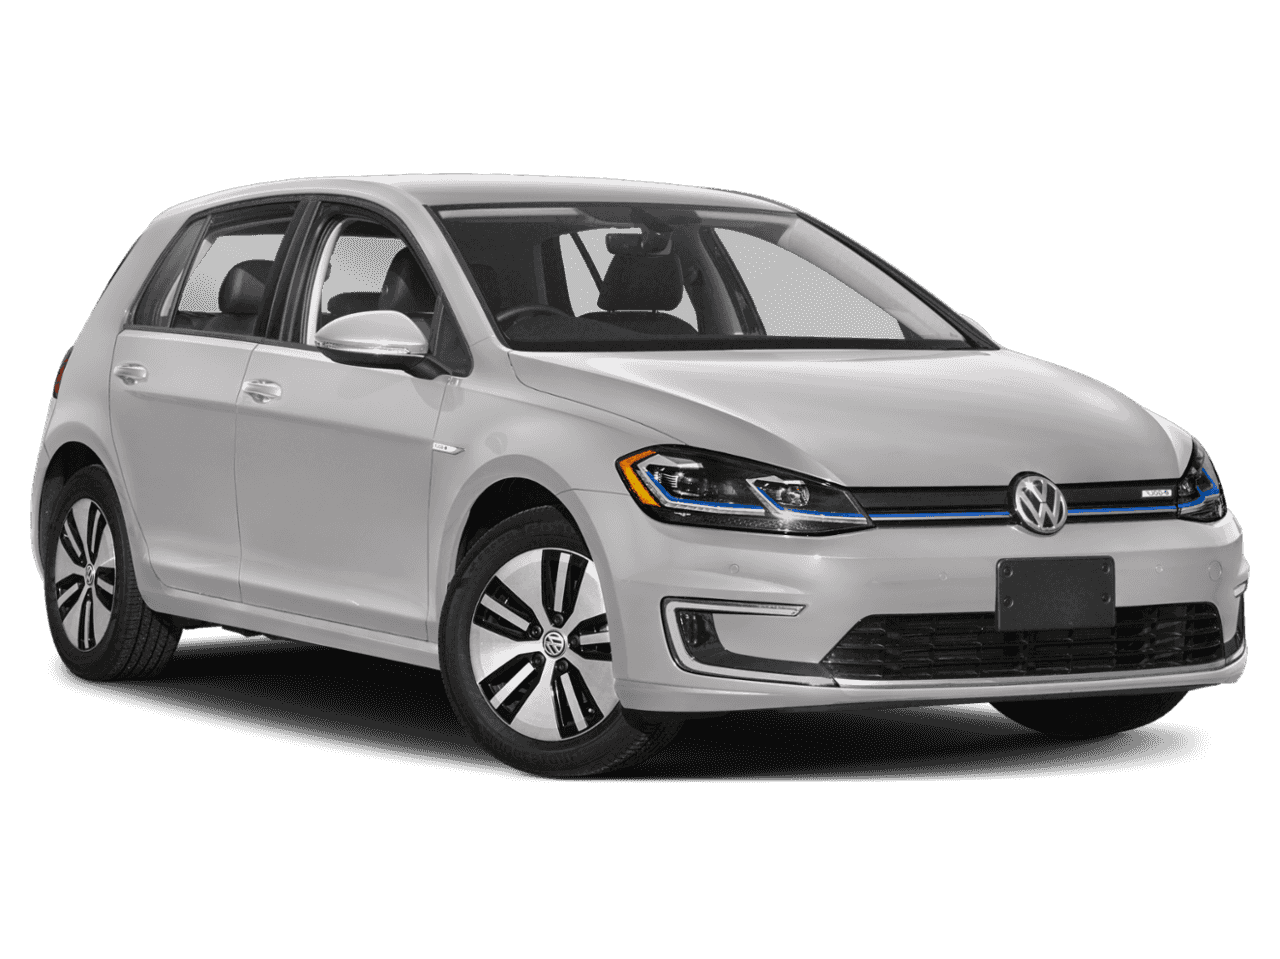 48 A Vw E Golf 2019 Price